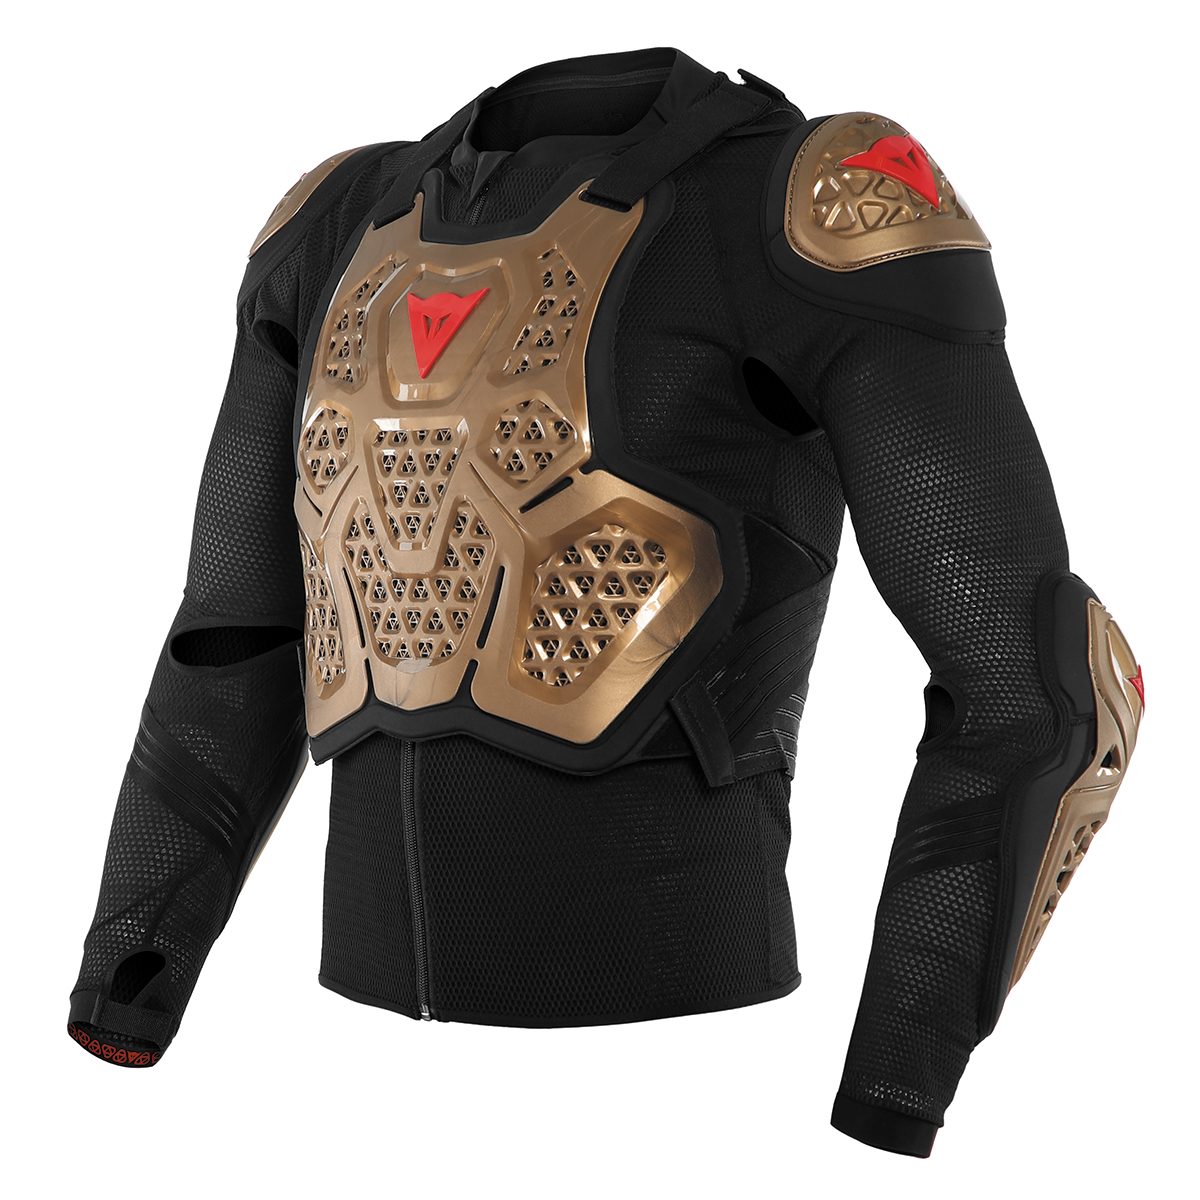 Dainese Bodyprotector MX 2 Copper